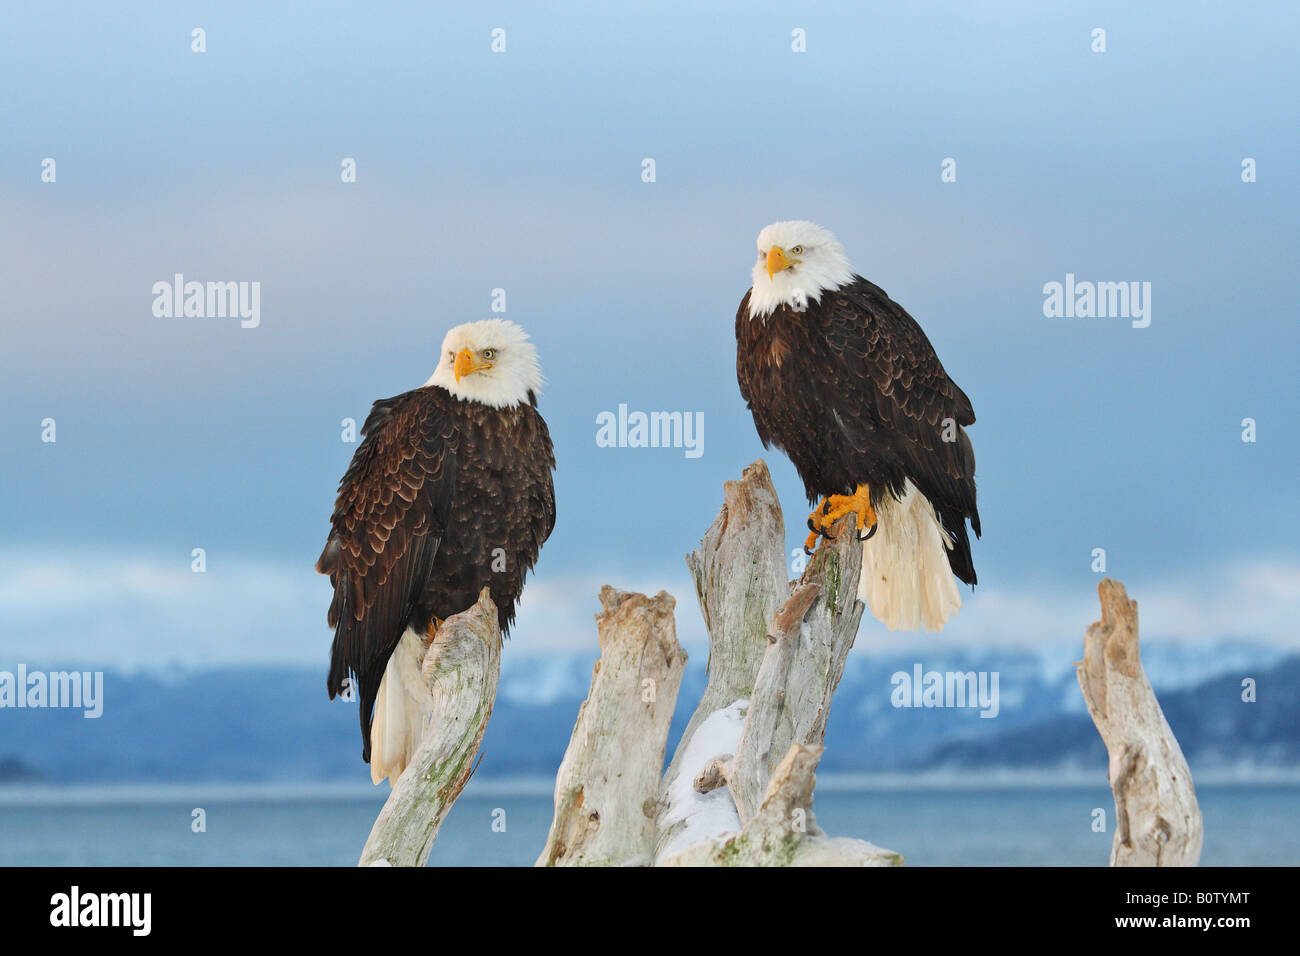 two Bald eagles - sitting on root - Stock Image